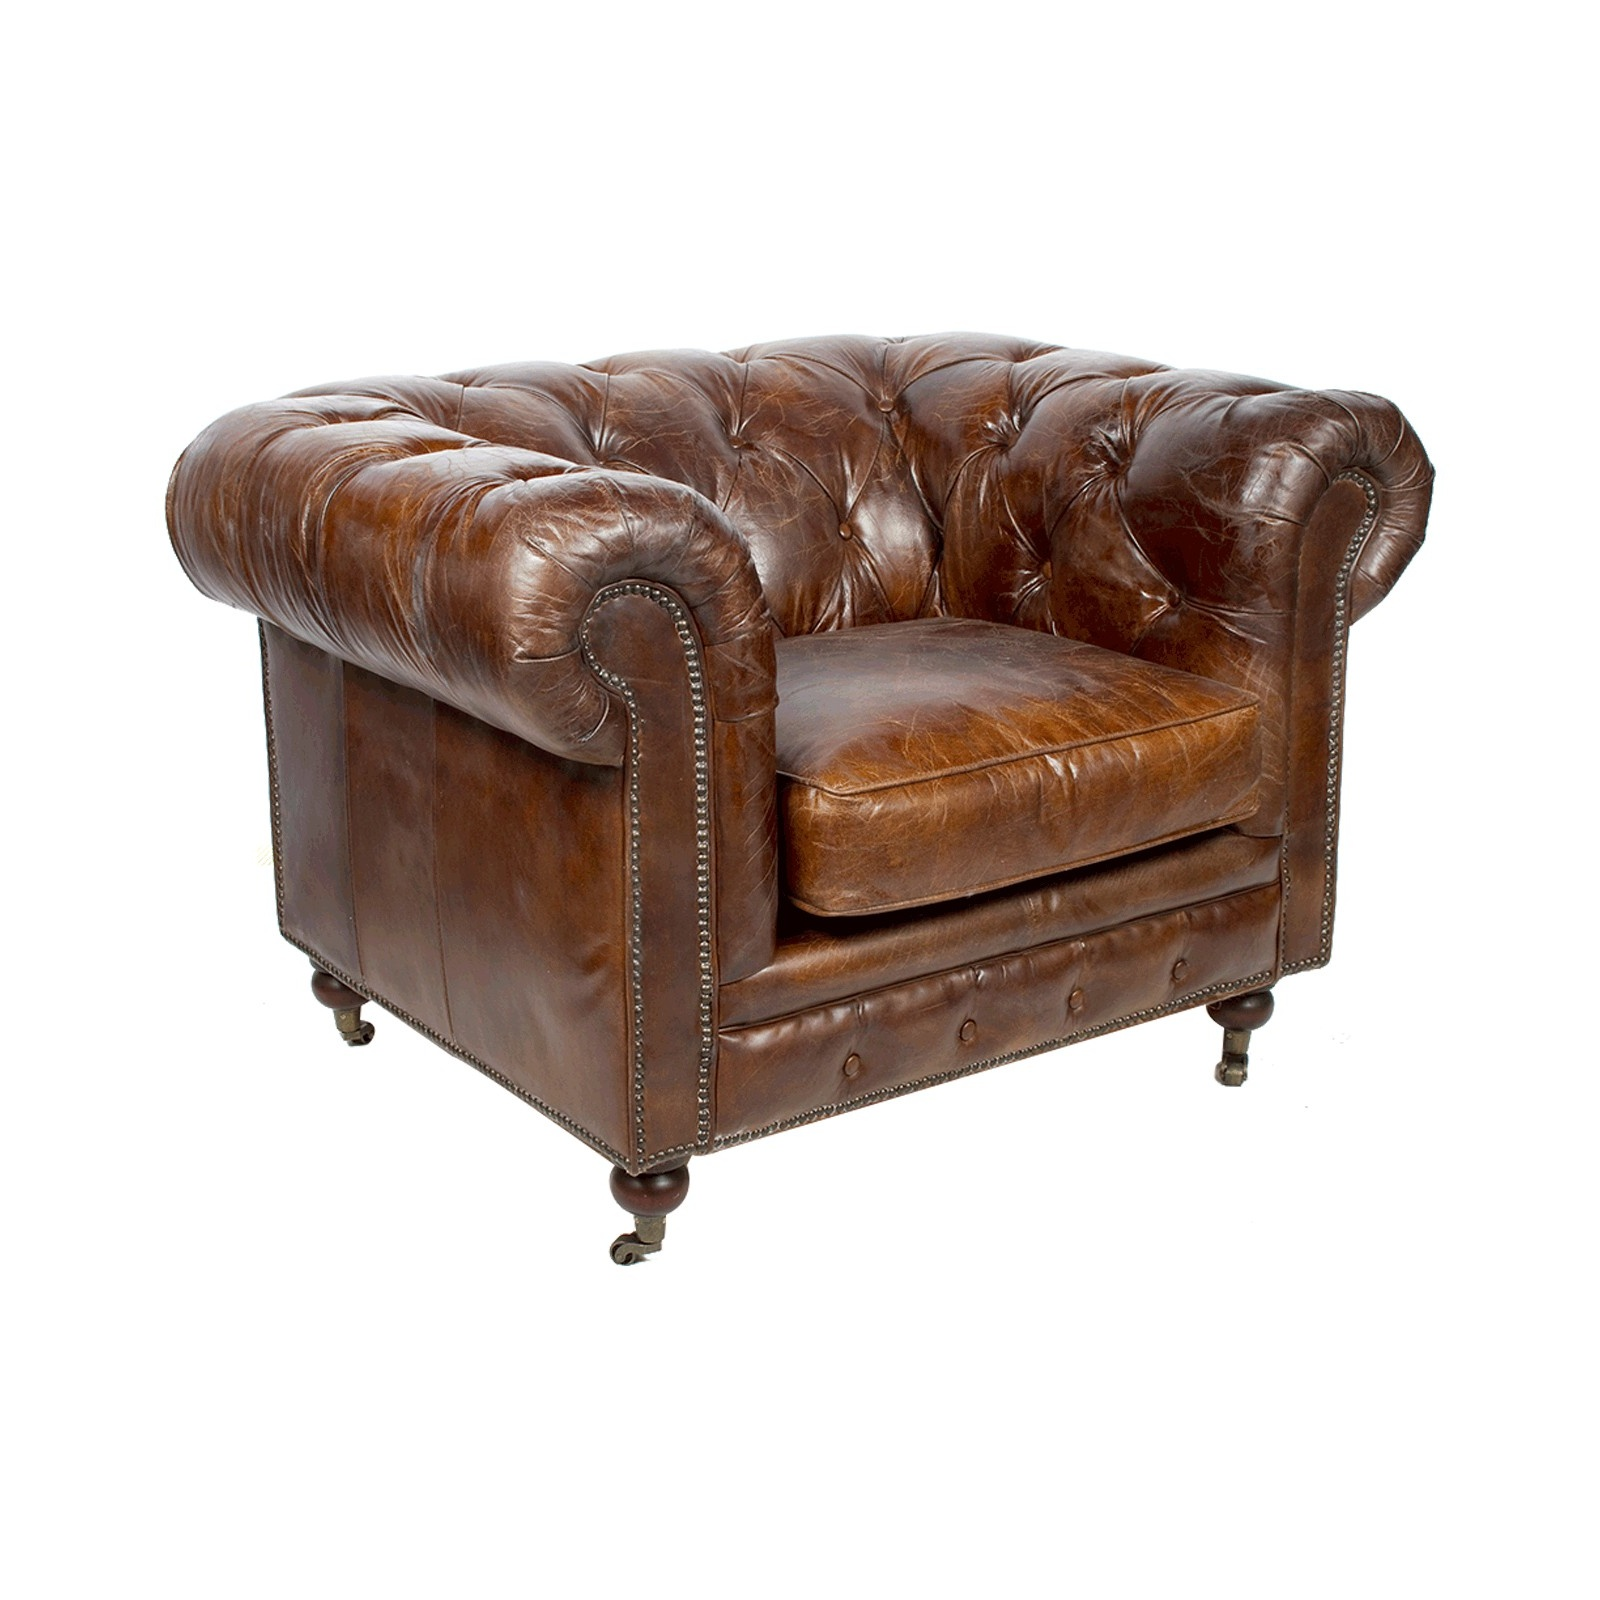 Fauteuil Chesterfield Origine Chesterfield Cigare